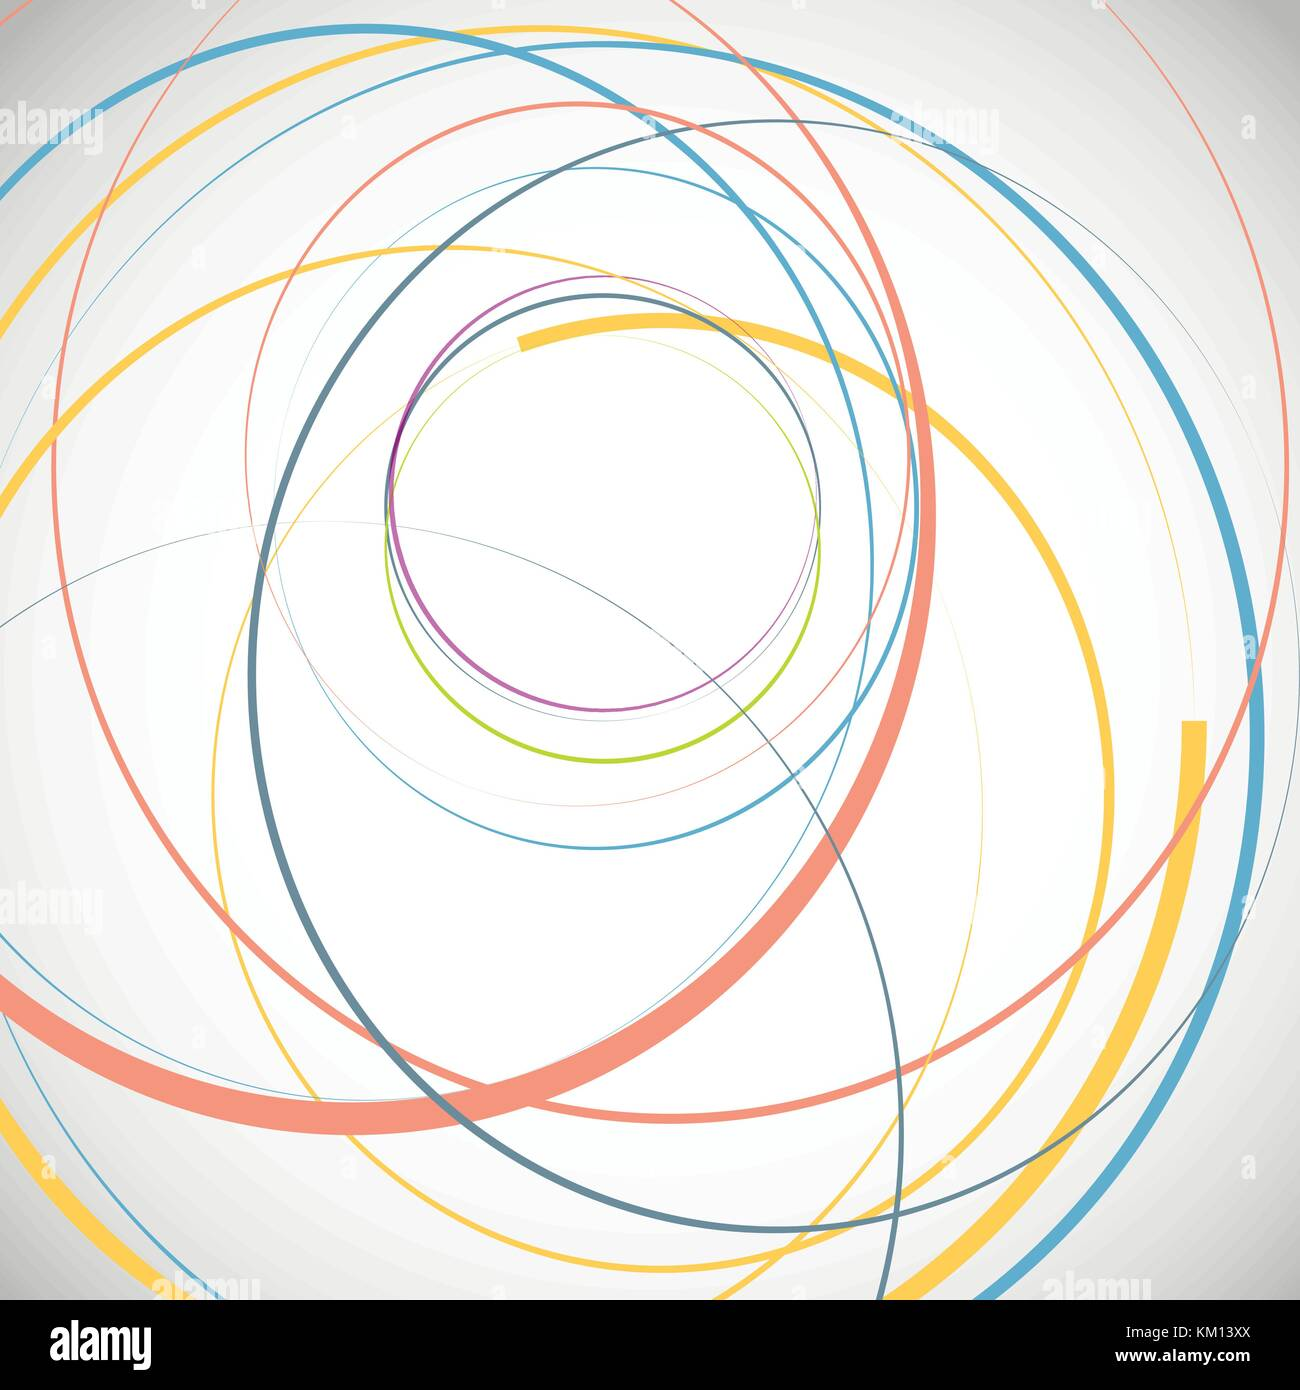 Abstract background with circles - Stock Image